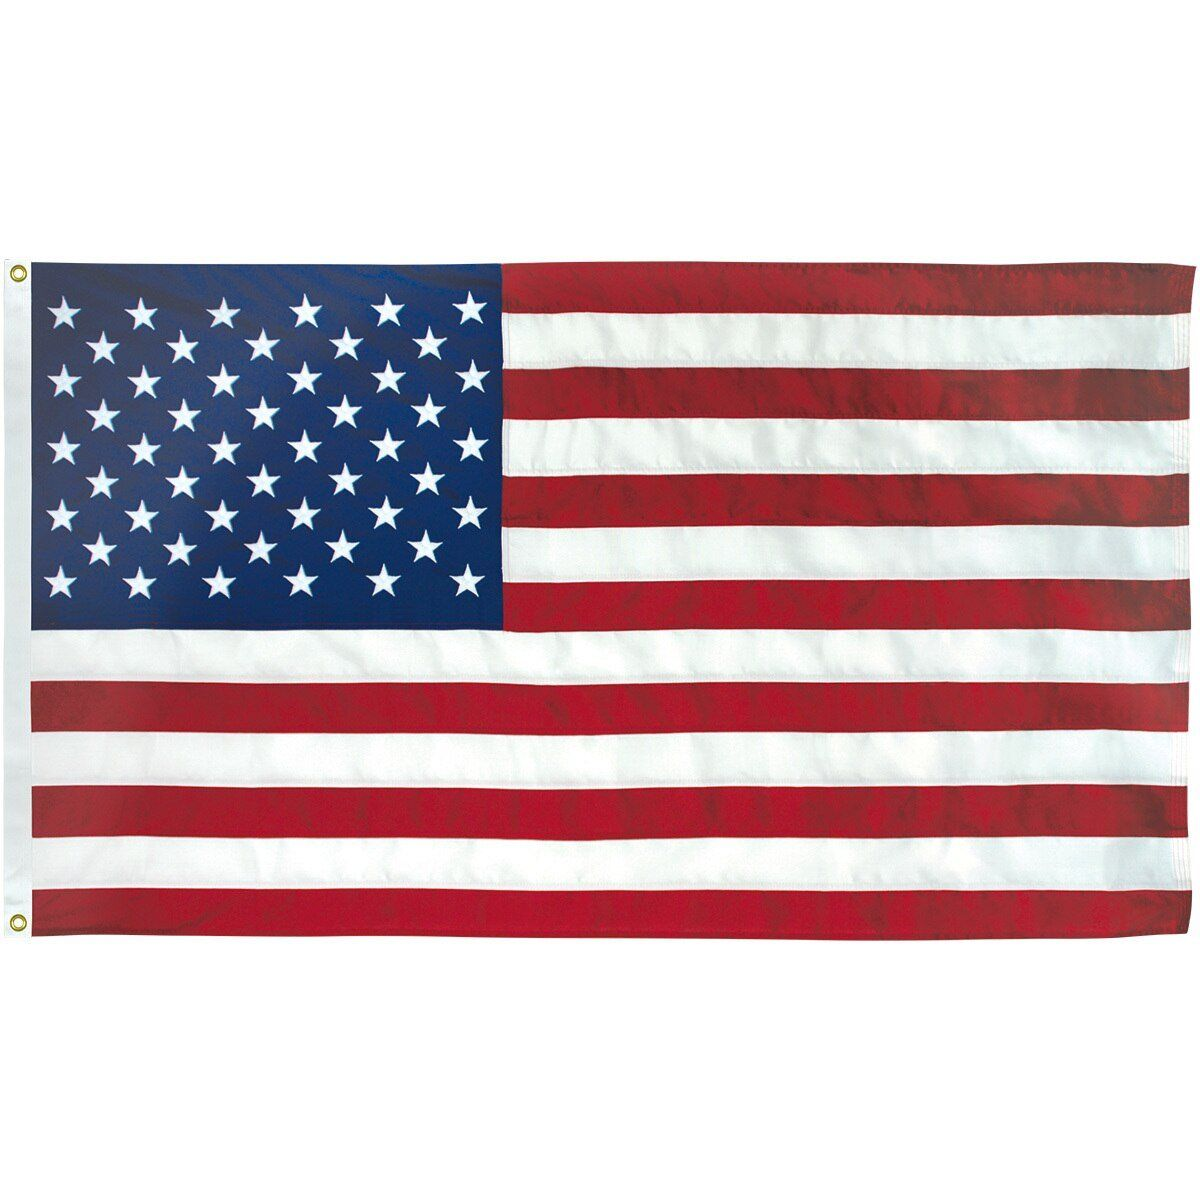 Polymax 2 Ply Polyester 3x5 American Flag With Grommets In